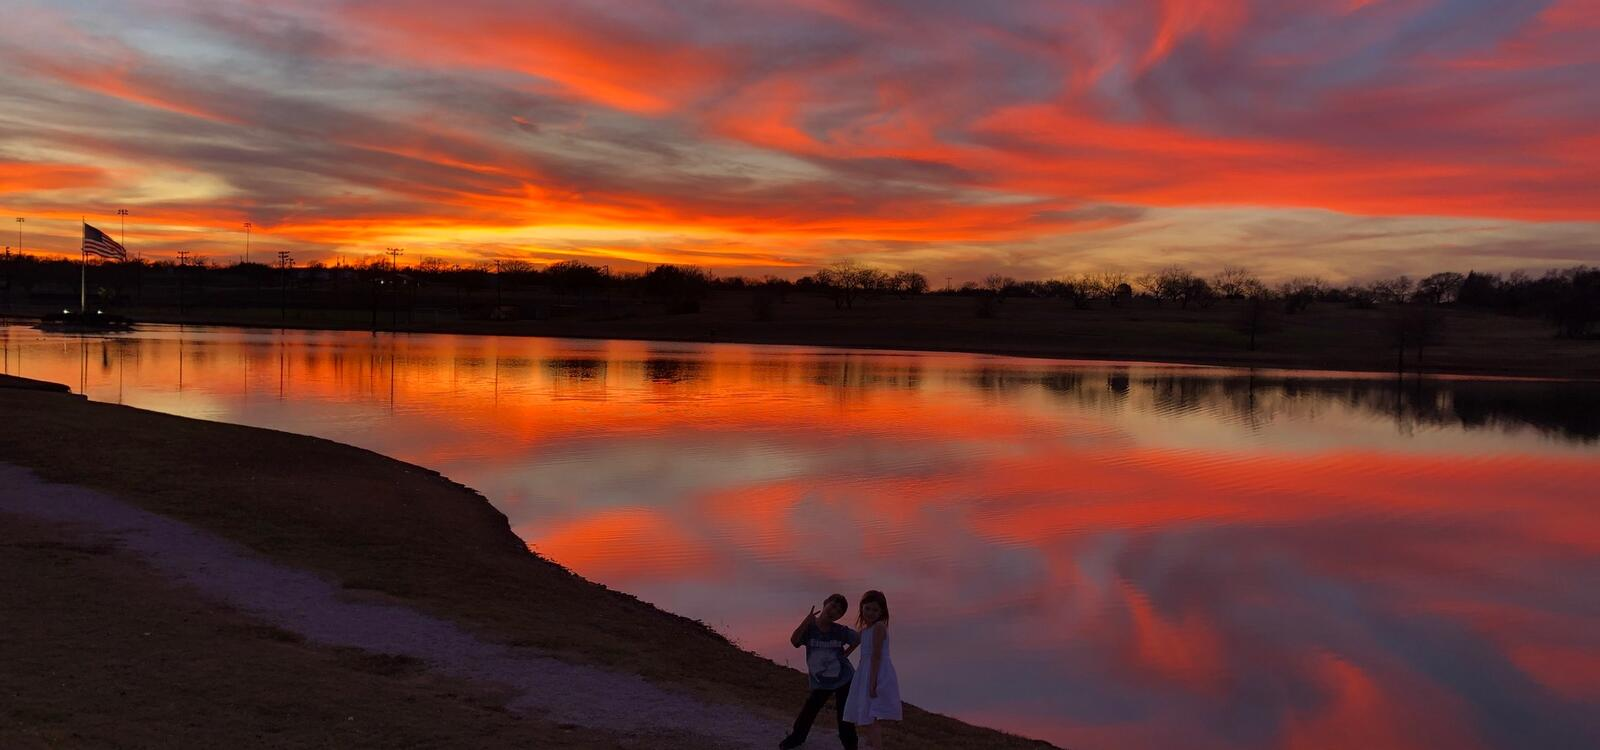 The sunset sets in pink, orange and blue colors and reflects off of the water of the duck pond